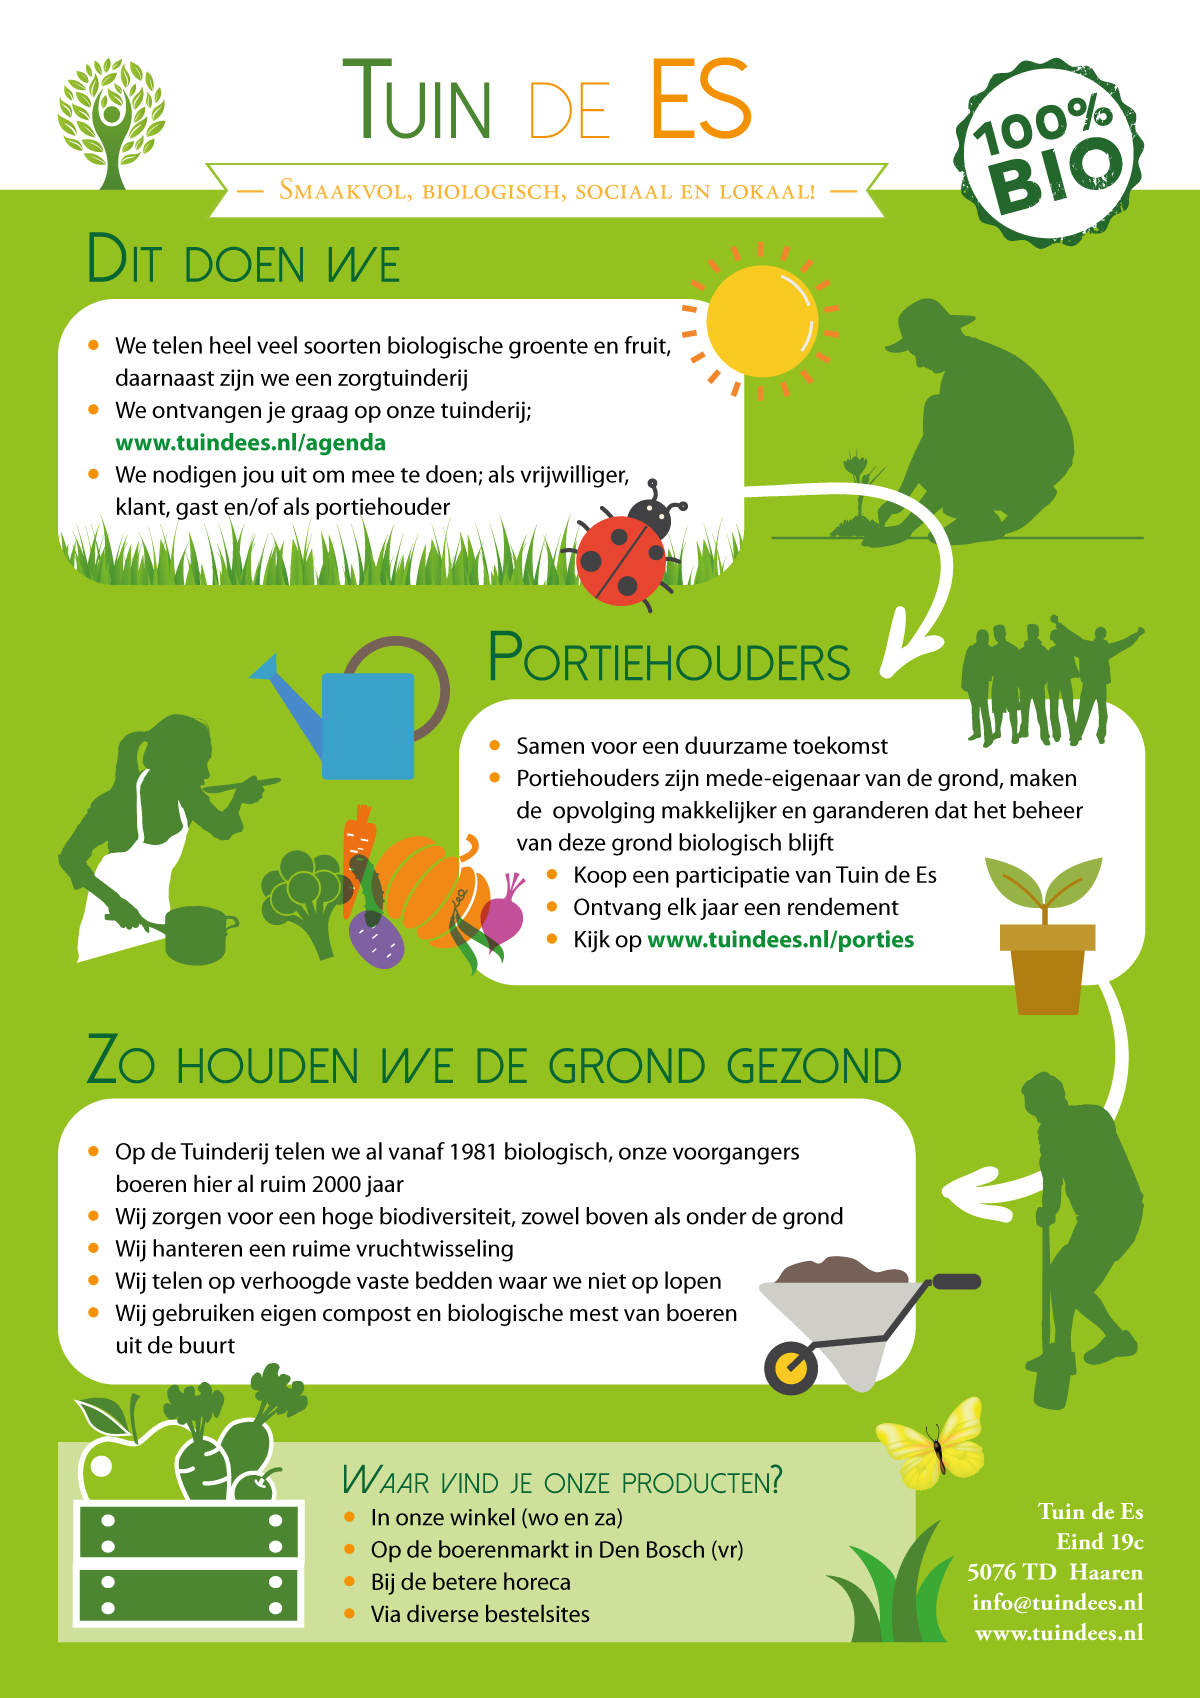 infographic op website en facebook